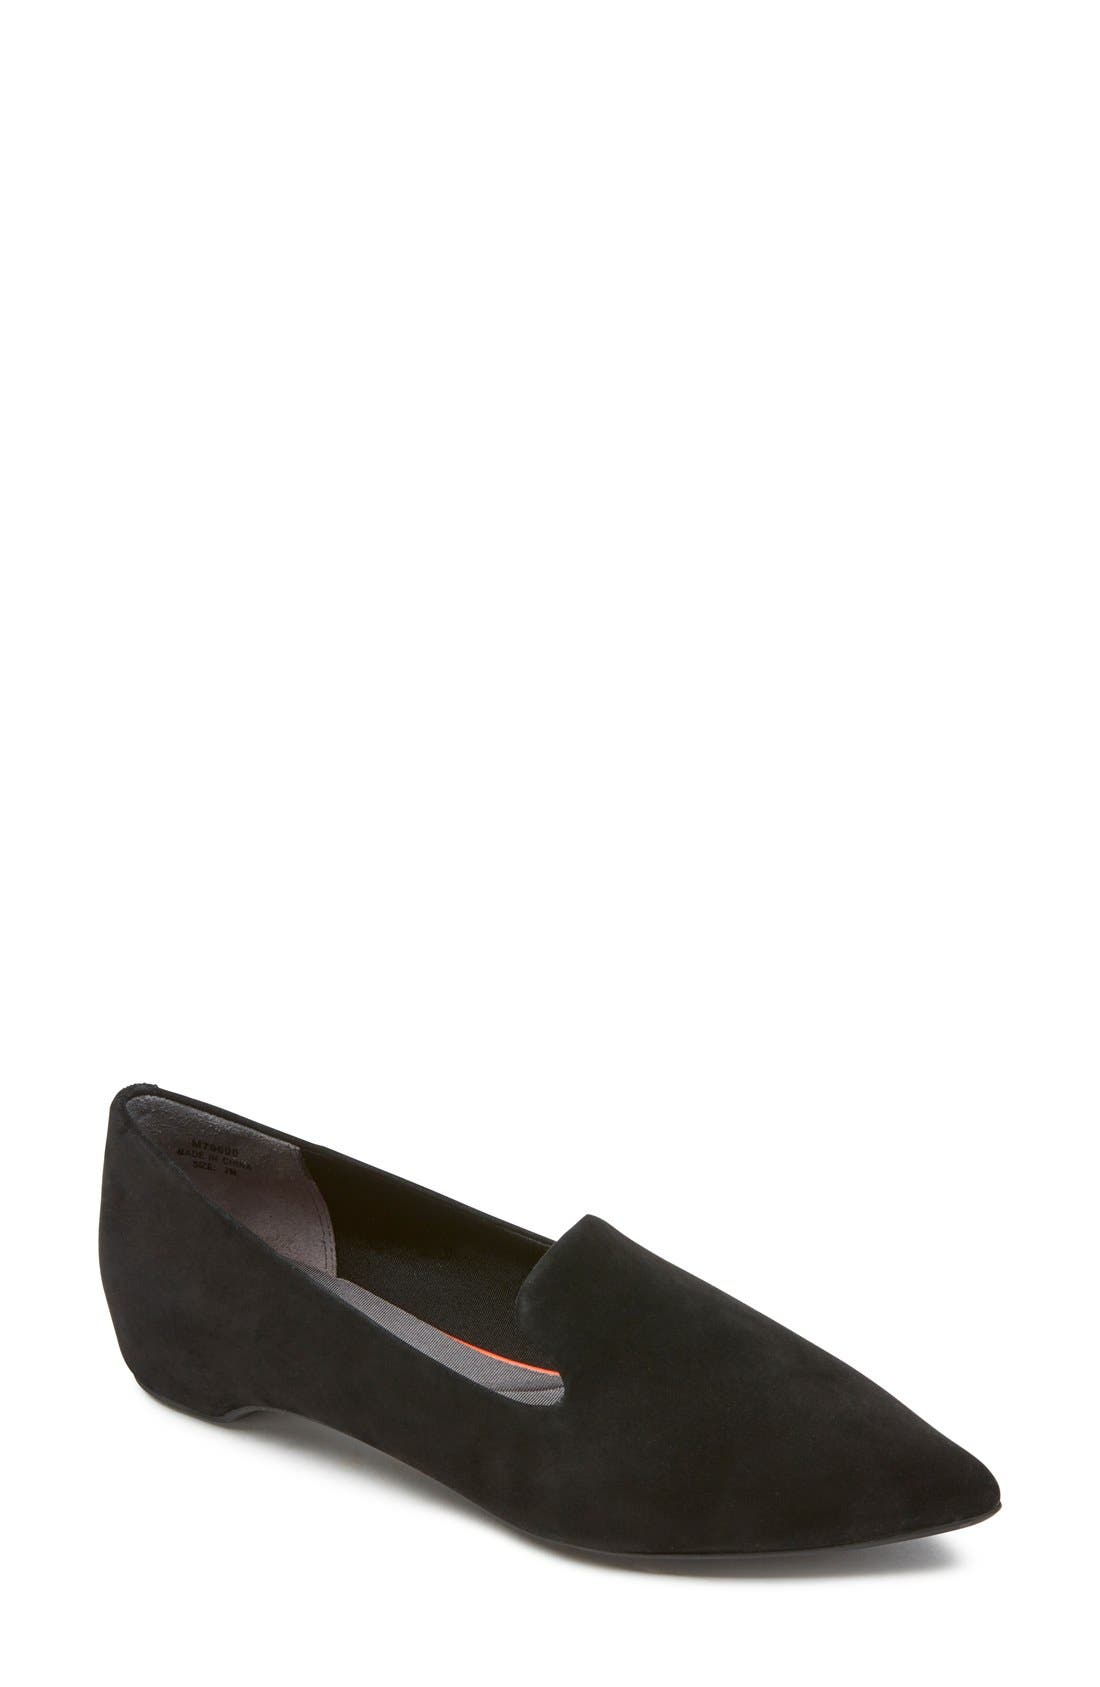 Alternate Image 1 Selected - Rockport 'Total Motion' Smoking Loafer (Women)